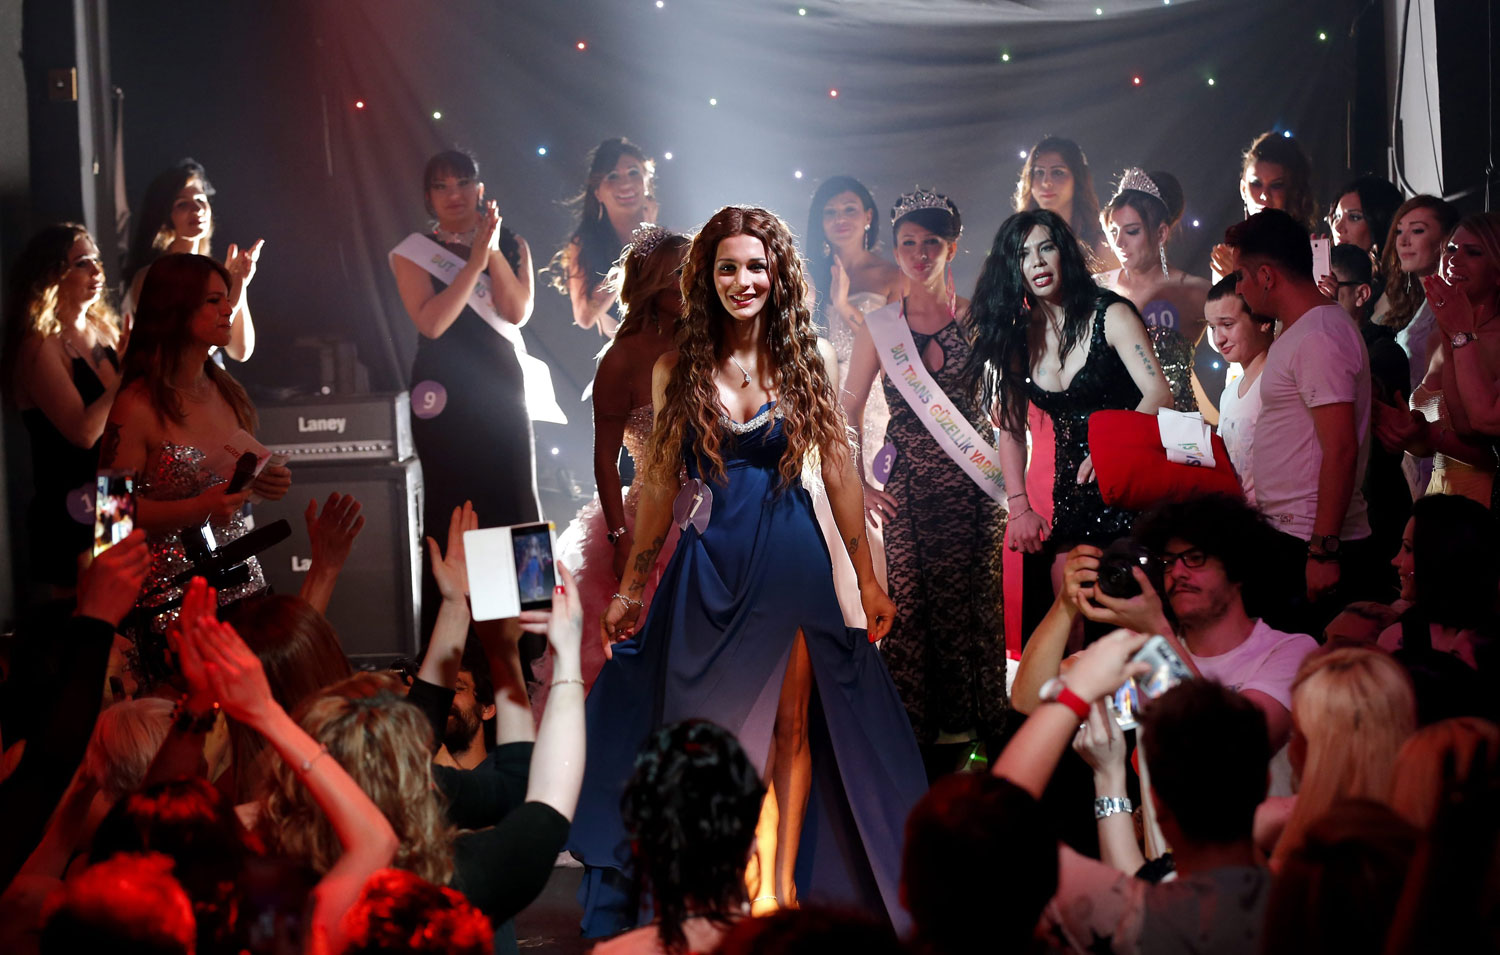 Yanki Bayramoglu takes center stage after winning the pageant in Istanbul on June 21, 2014. Turkey's LGBT community continues to expand and make strides both in the social and political arenas.